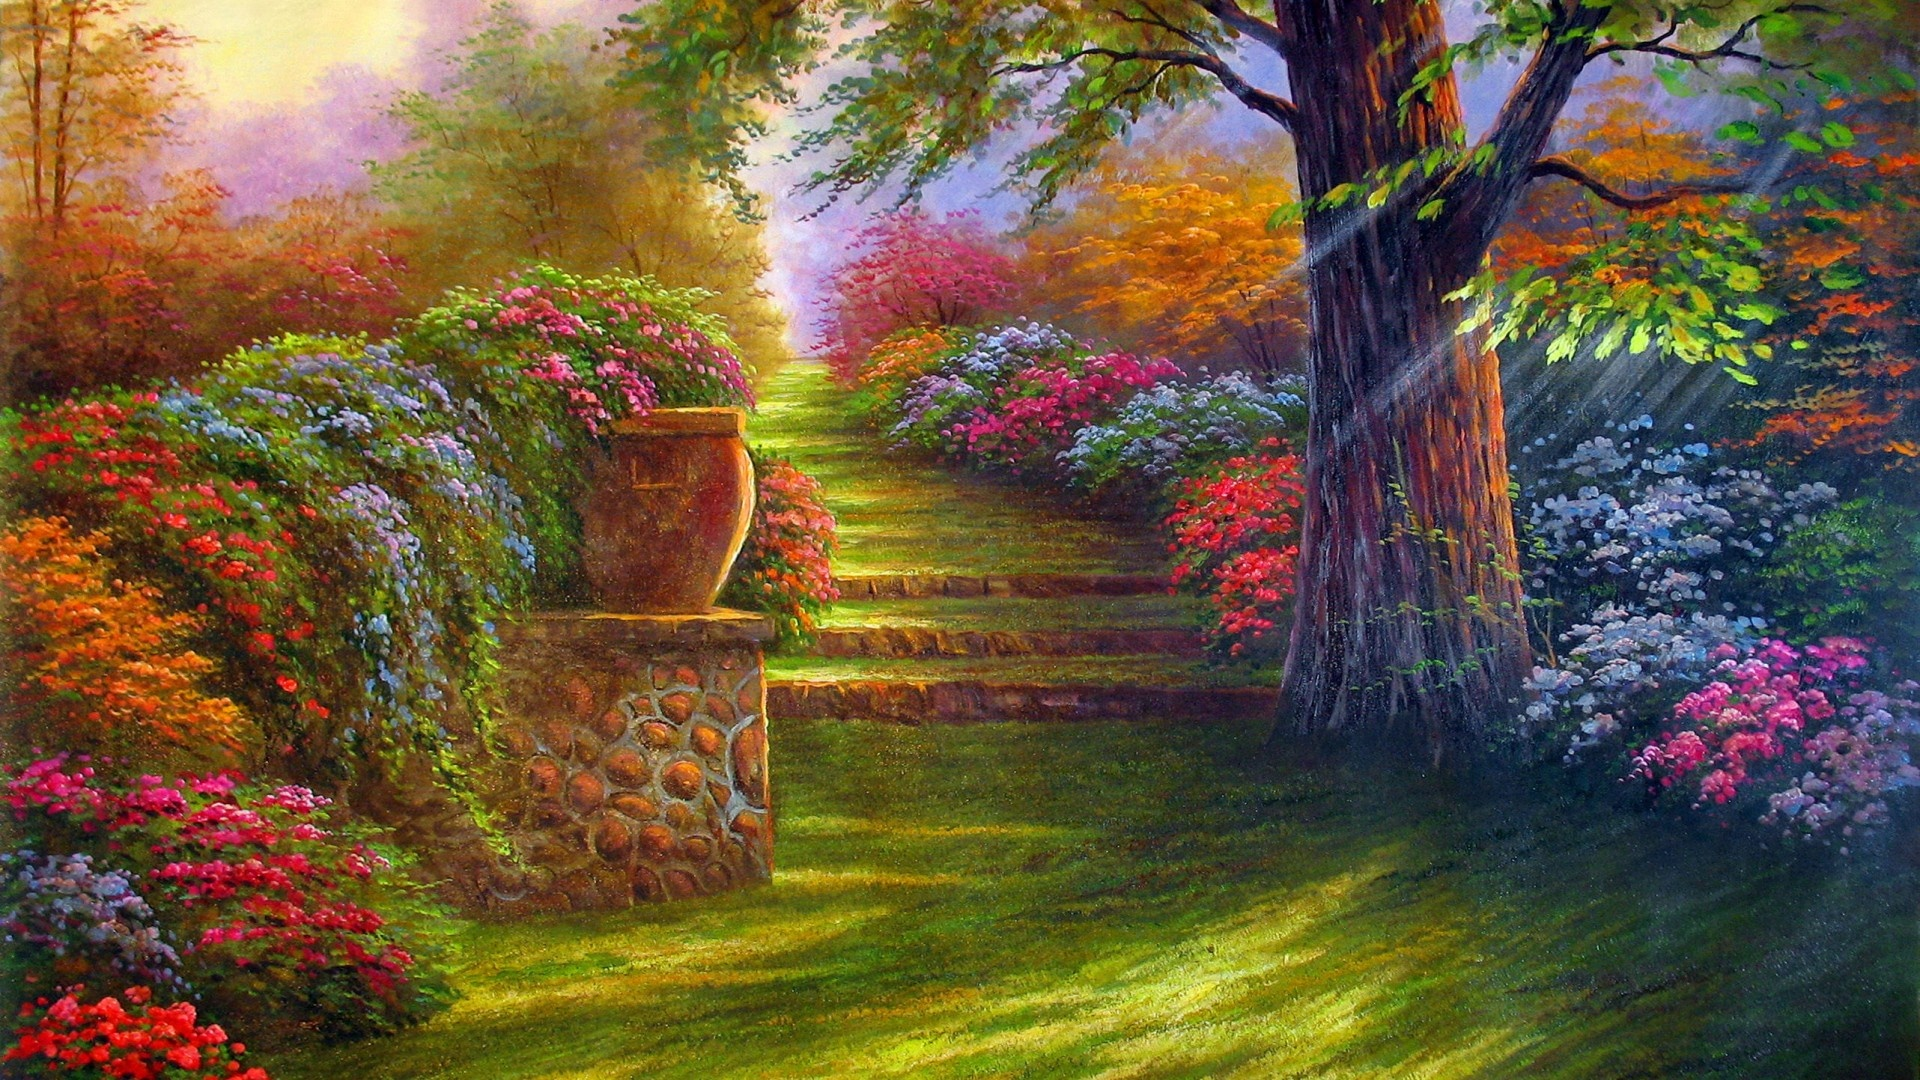 Garden Digital Art HD wallpaper | HD Latest Wallpapers